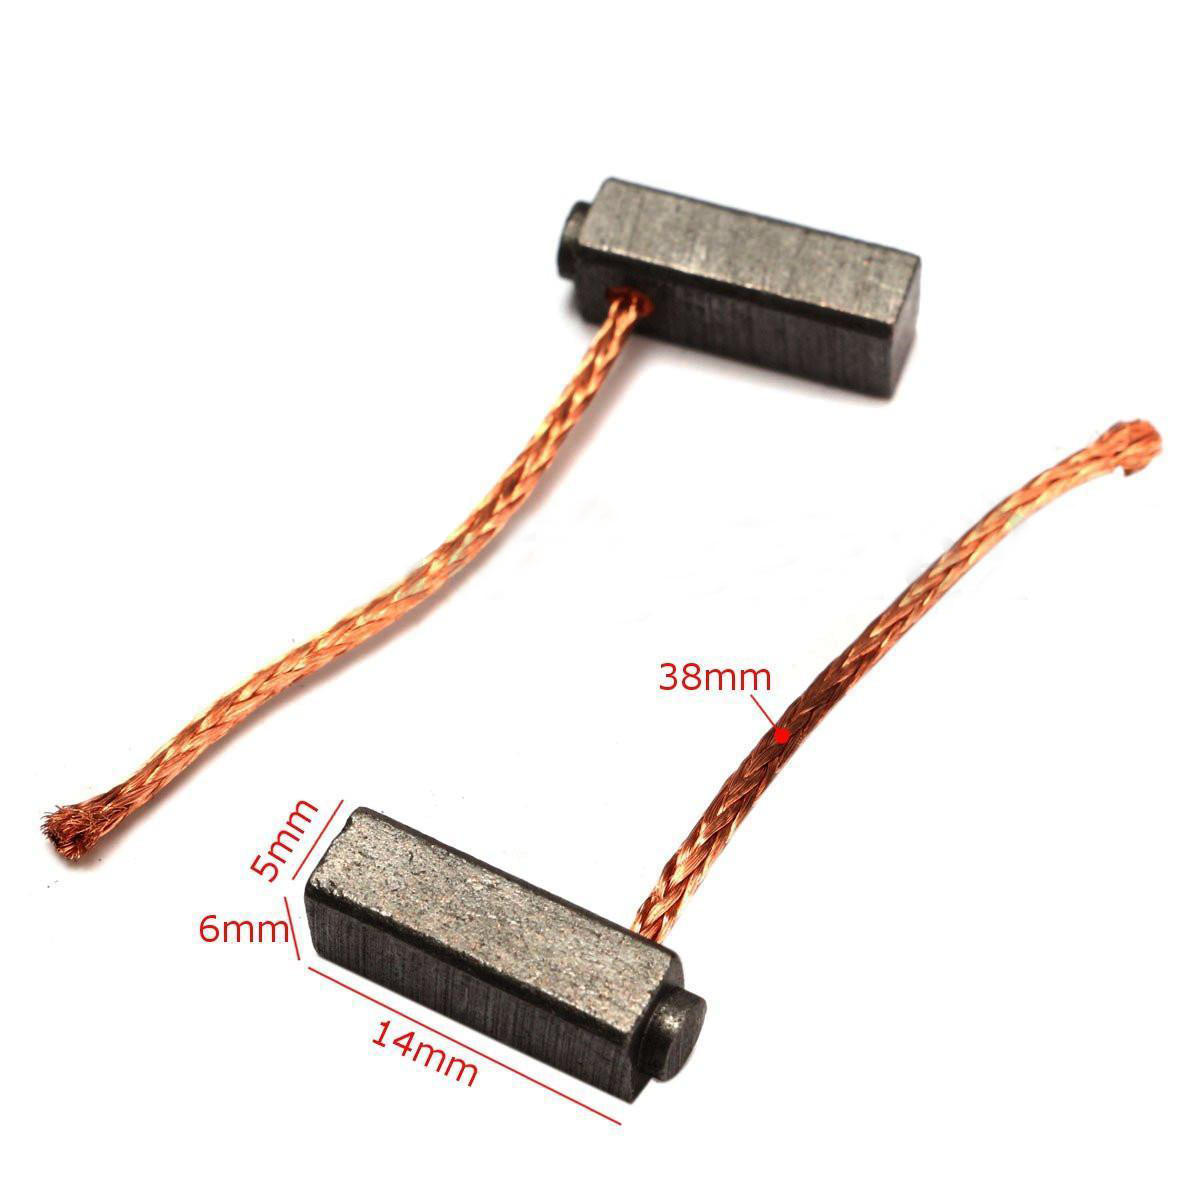 10pcs/lot Carbon Motor Brushes Replacement Brush Set For Generic Electric Motor Commutator 5x6x14mm